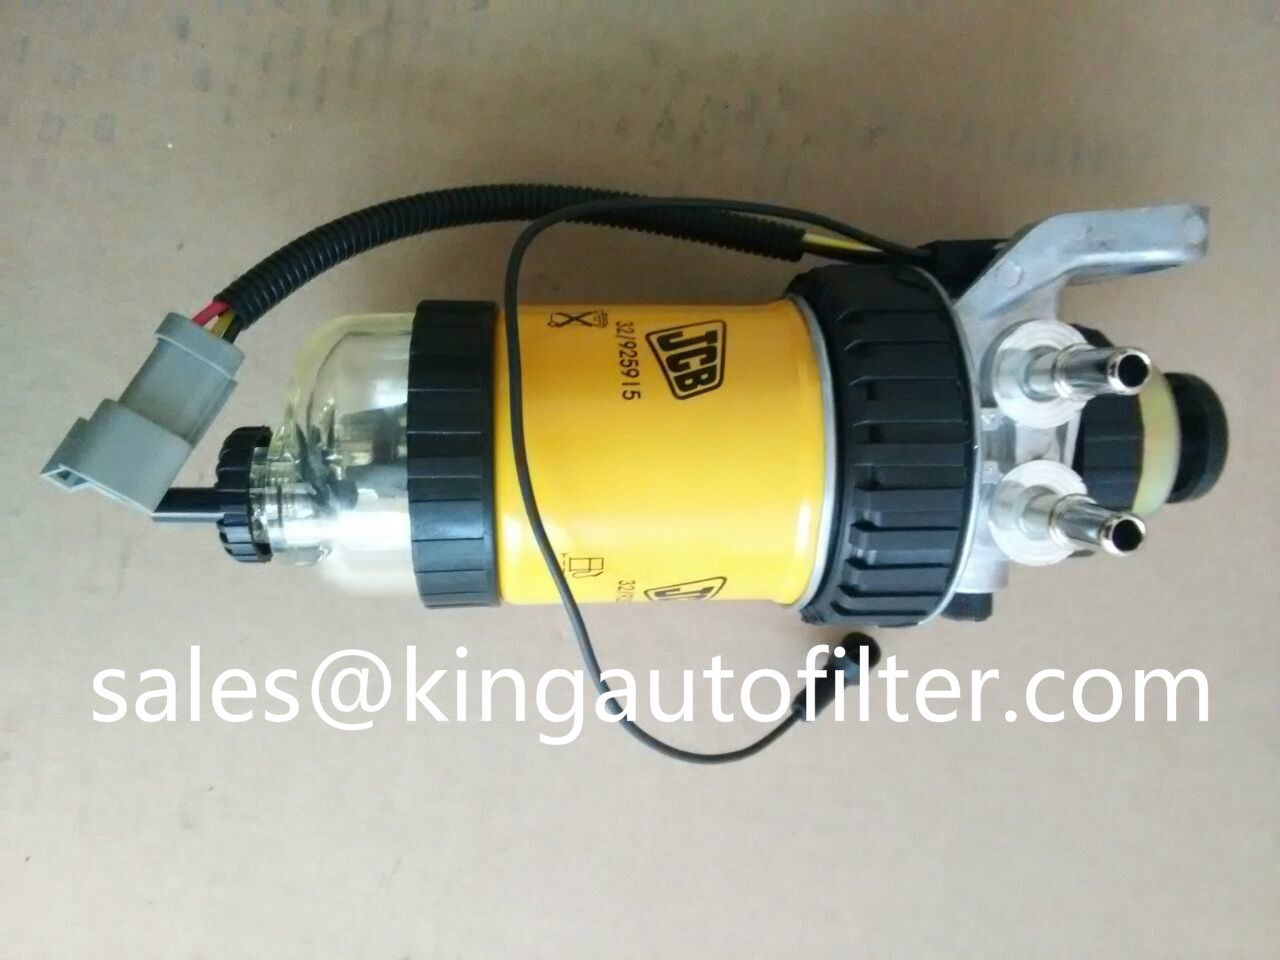 11 6285 Thermo King Fuel Filter Water Seperator Element Jcb 3cx 4cx Excavator Separator 32 925915 925914